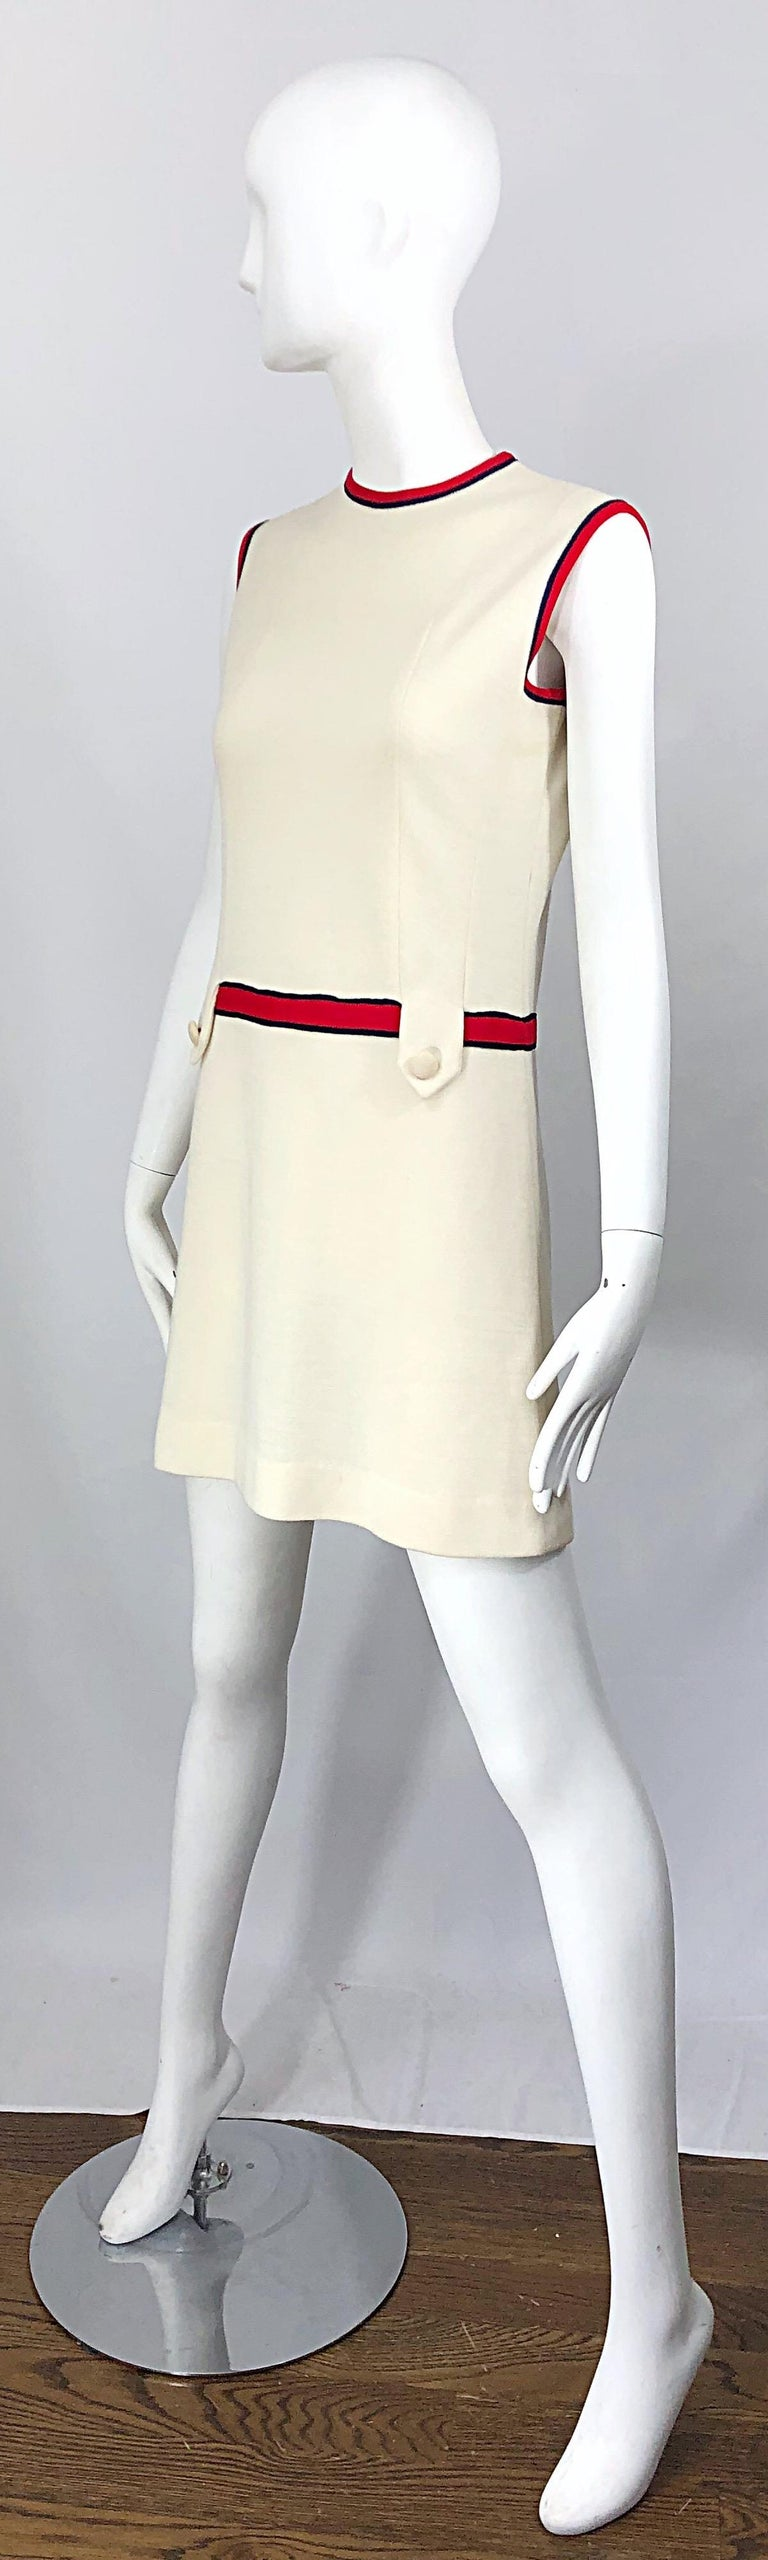 Women's Chic 1960s Ivory + Navy Blue + Red Knit Vintage 60s Nautical Mod Shift Dress For Sale